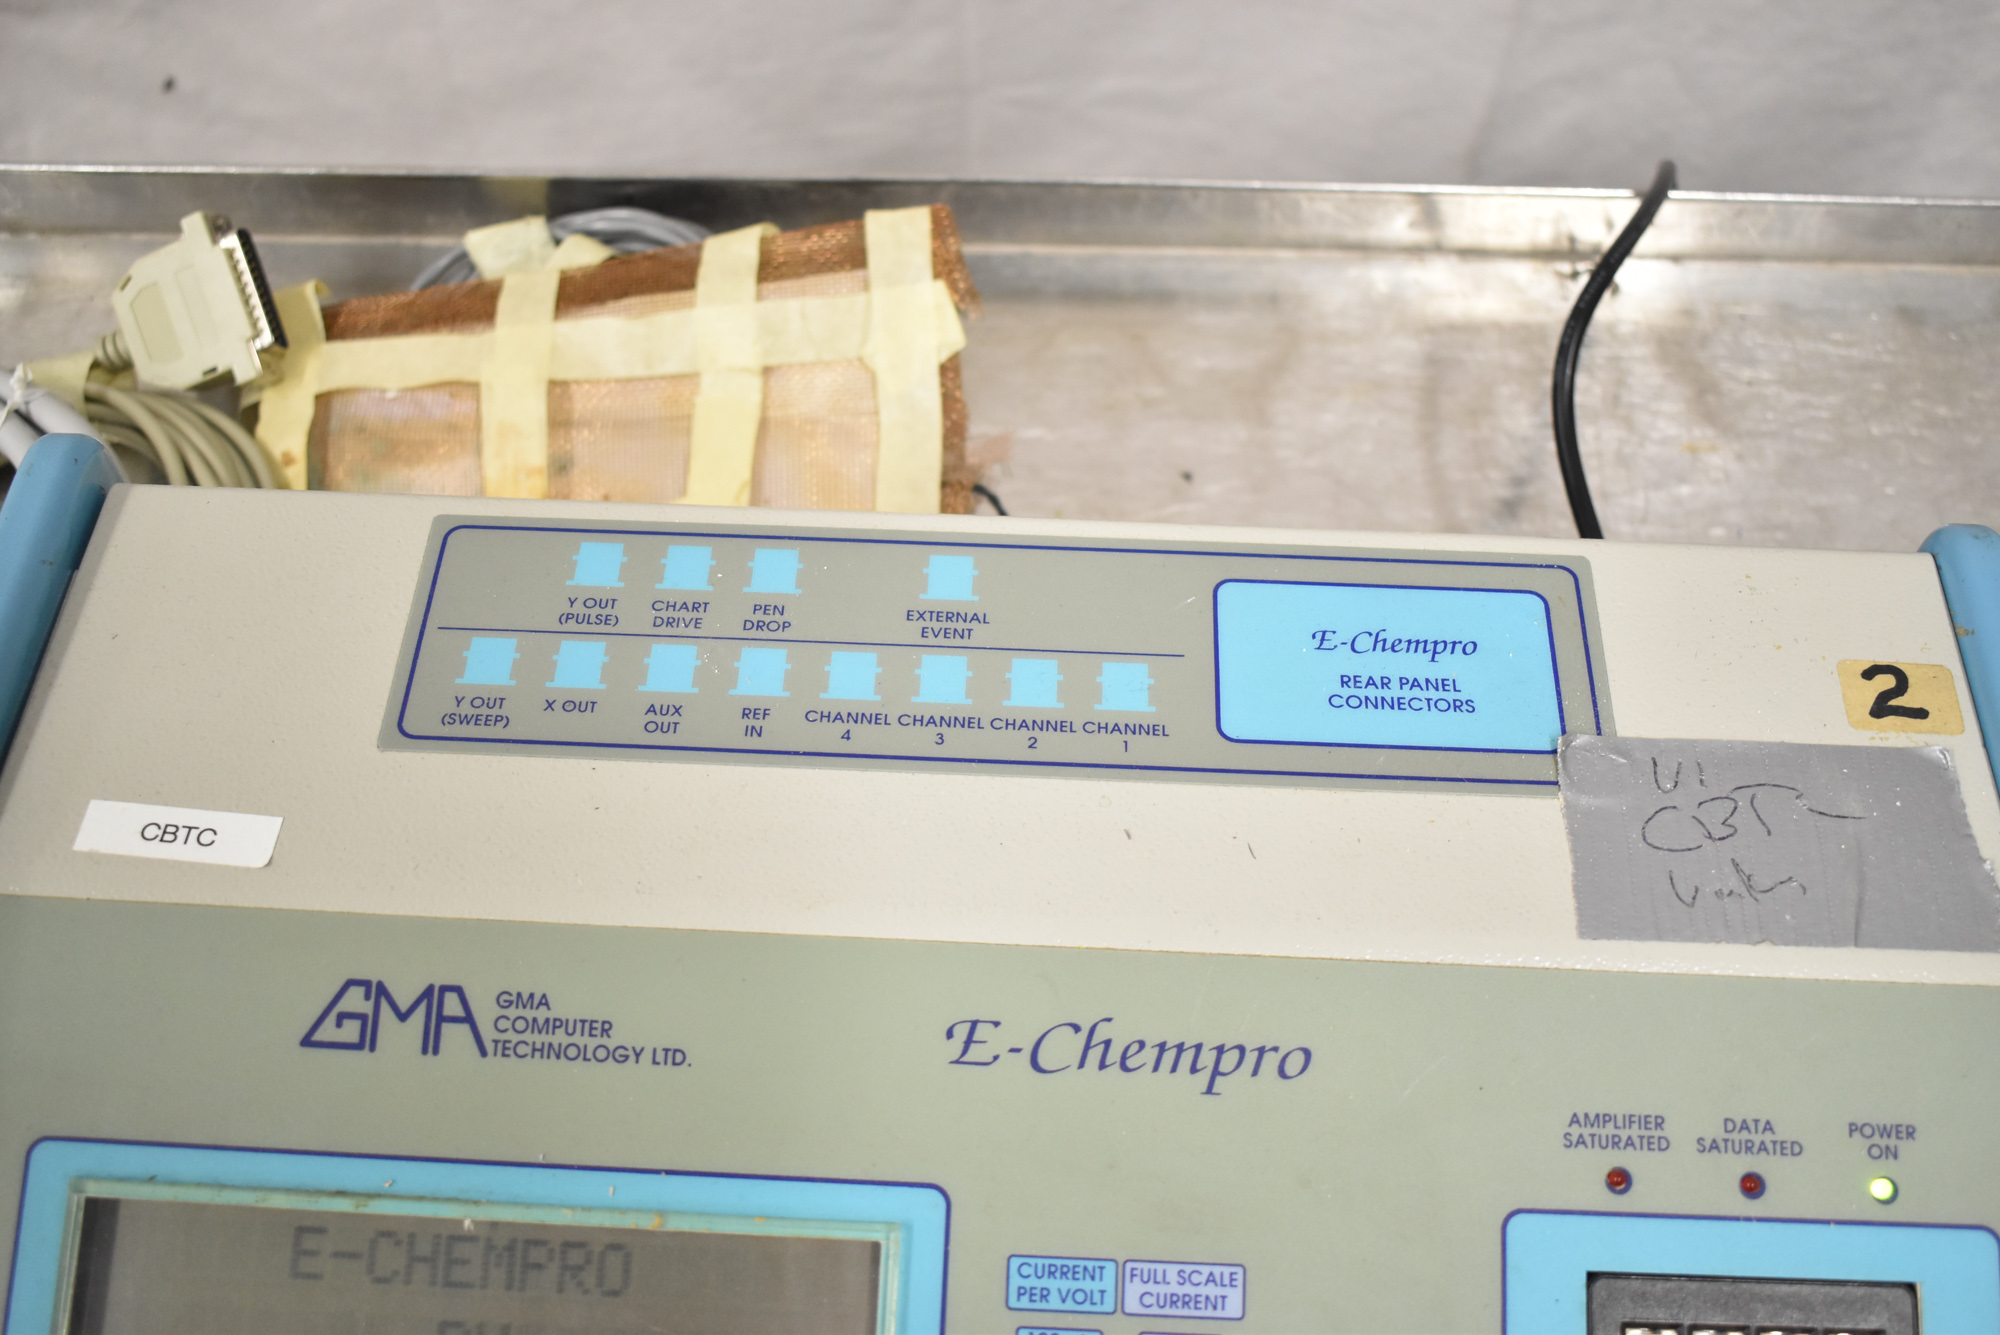 GMA E-CHEMPRO 1/220/50 HIGH SPEED SAMPLER WITH ATEN UC-232A USB TO SERIAL CONVERTER, S/N: 0002 [$ - Image 3 of 5